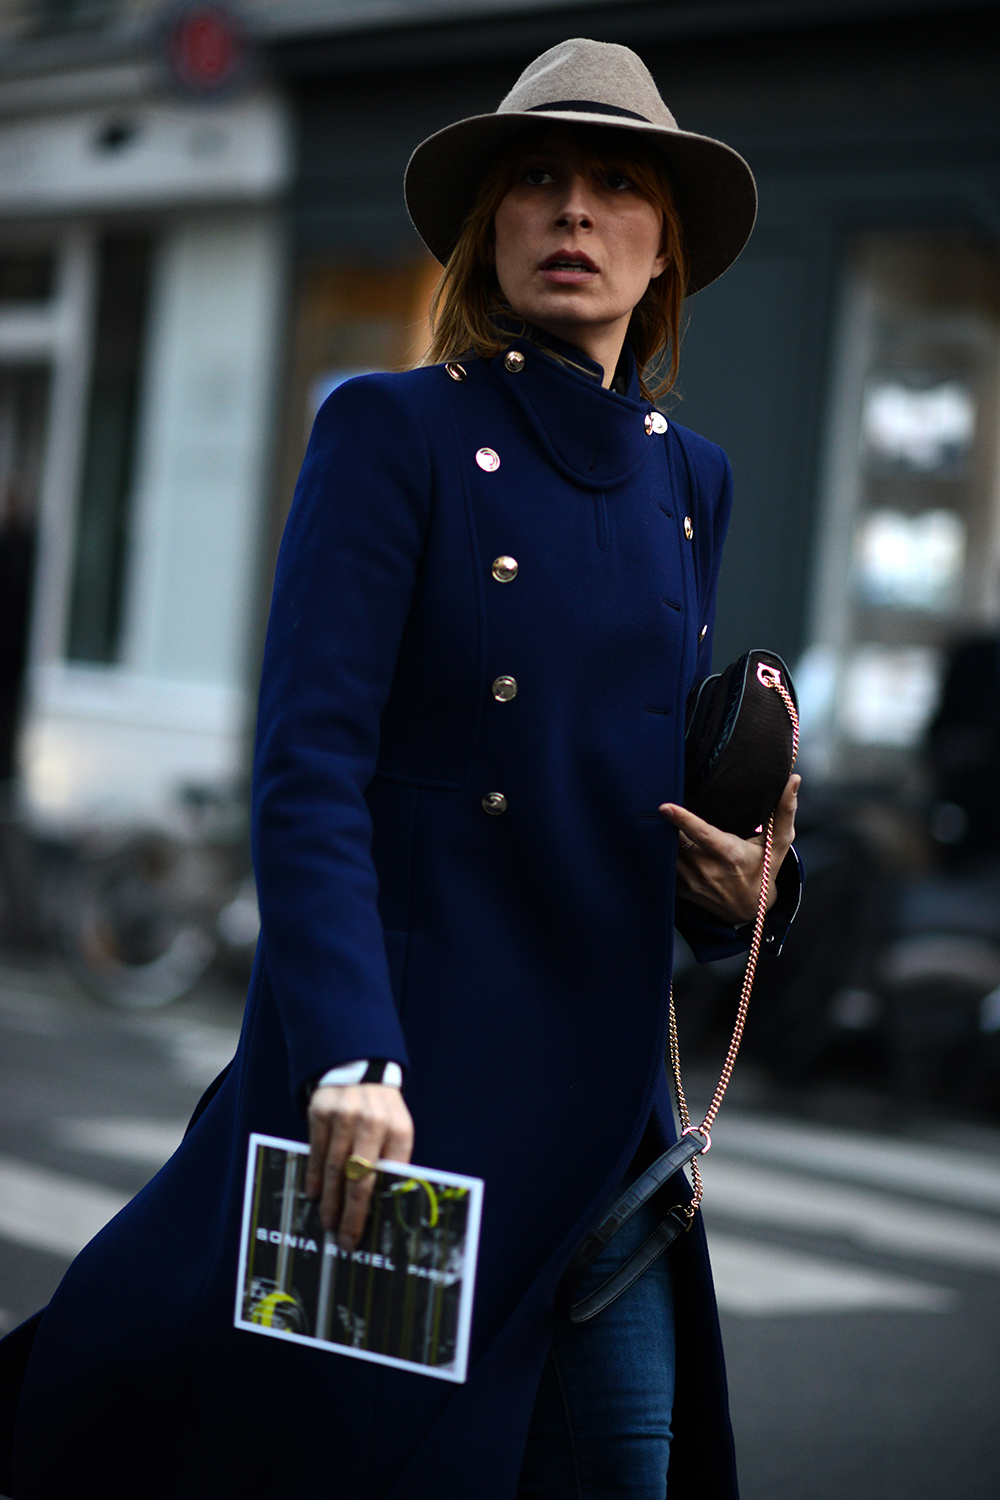 bluecoat01-chictoochic 1000